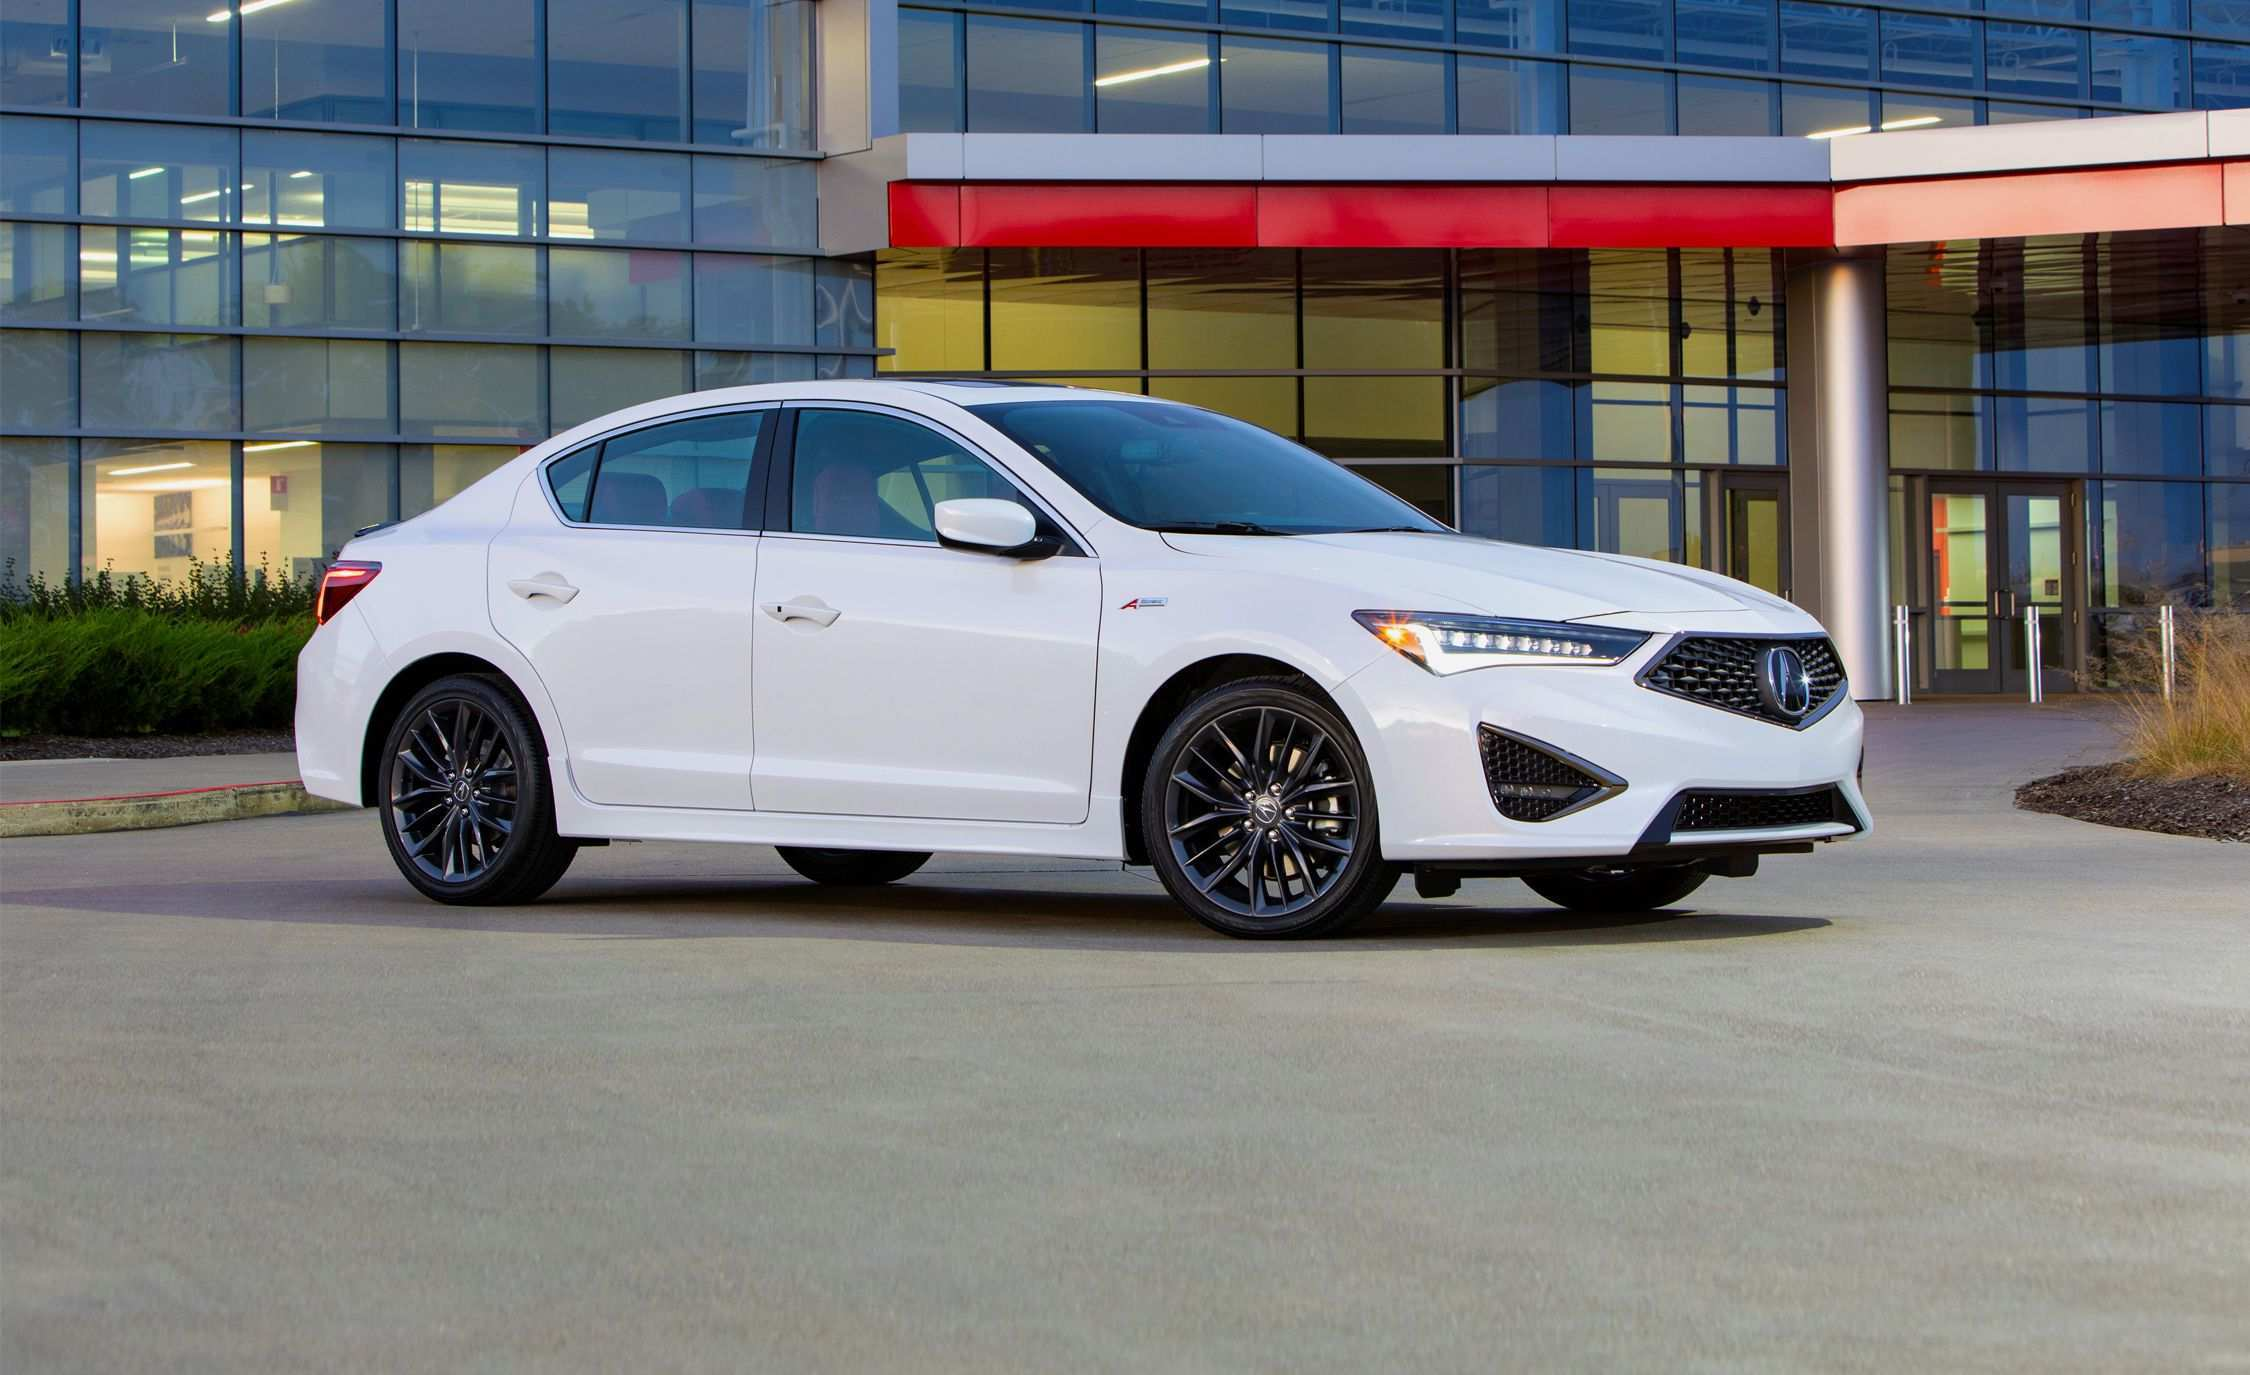 65 Best Review 2019 Acura Specs Release for 2019 Acura Specs